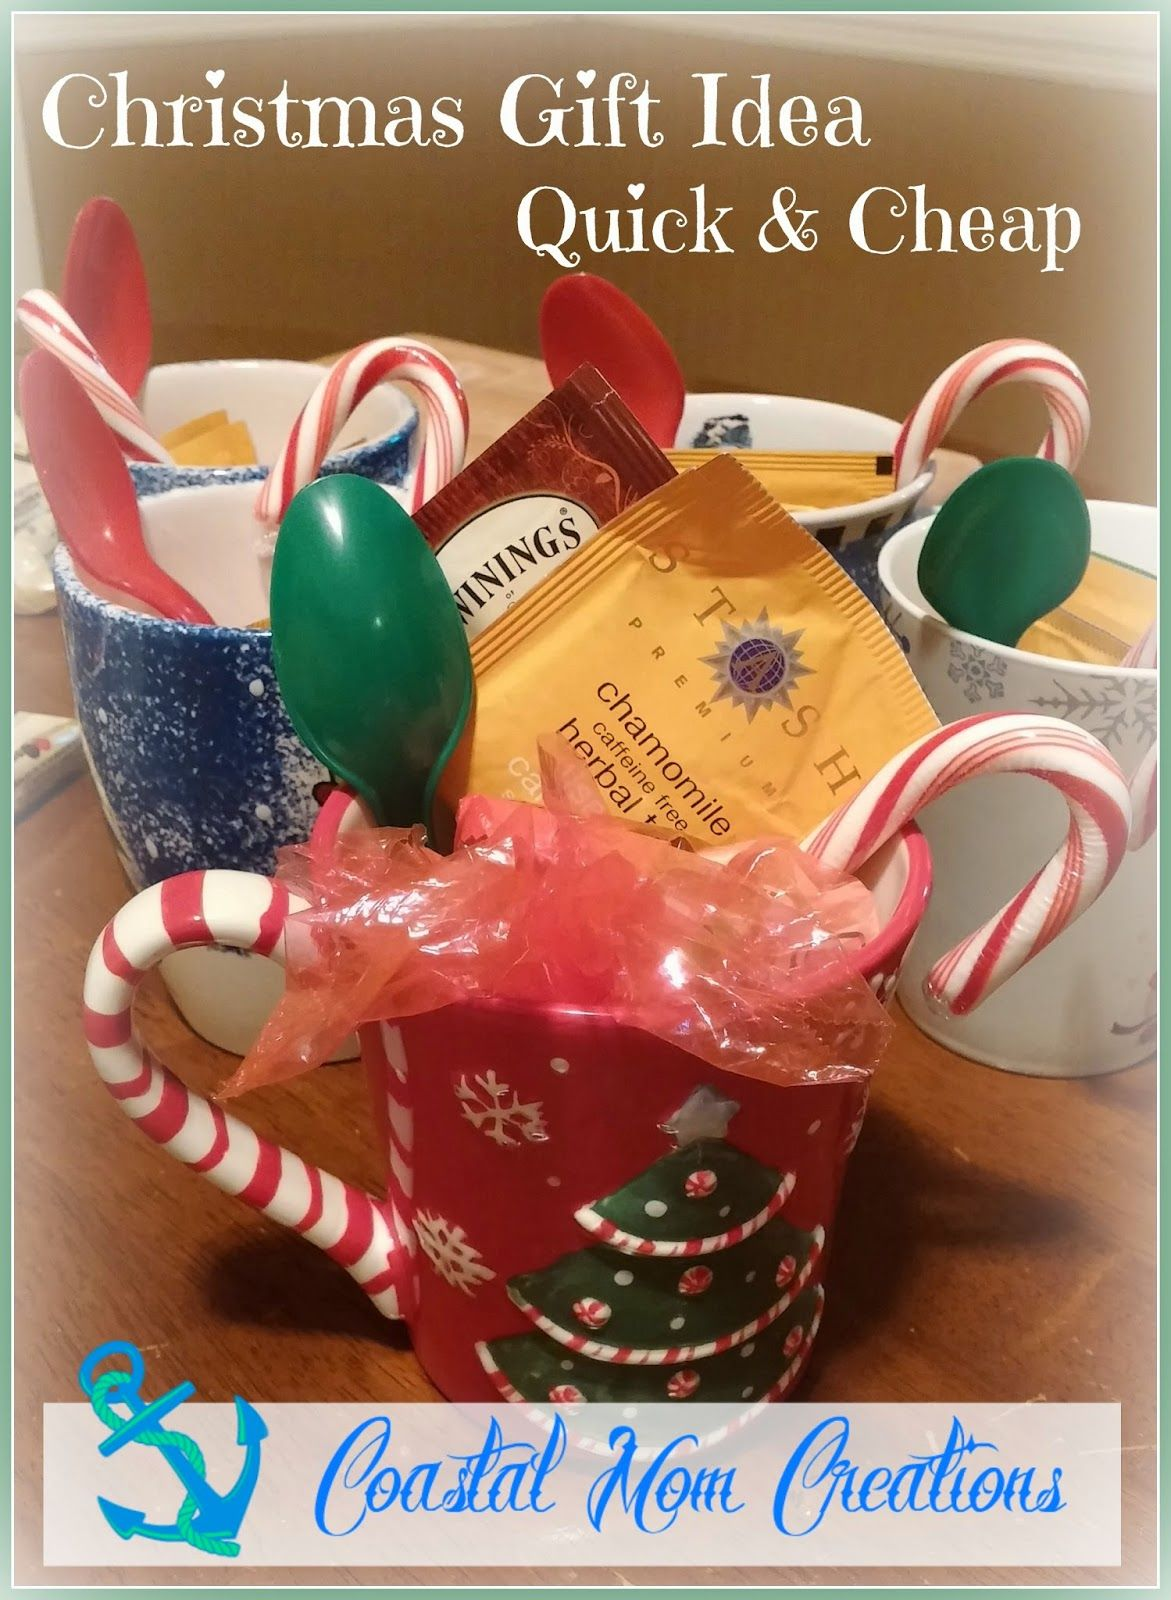 Quick, Easy, Inexpensive Christmas Gift Idea! Great for office ...